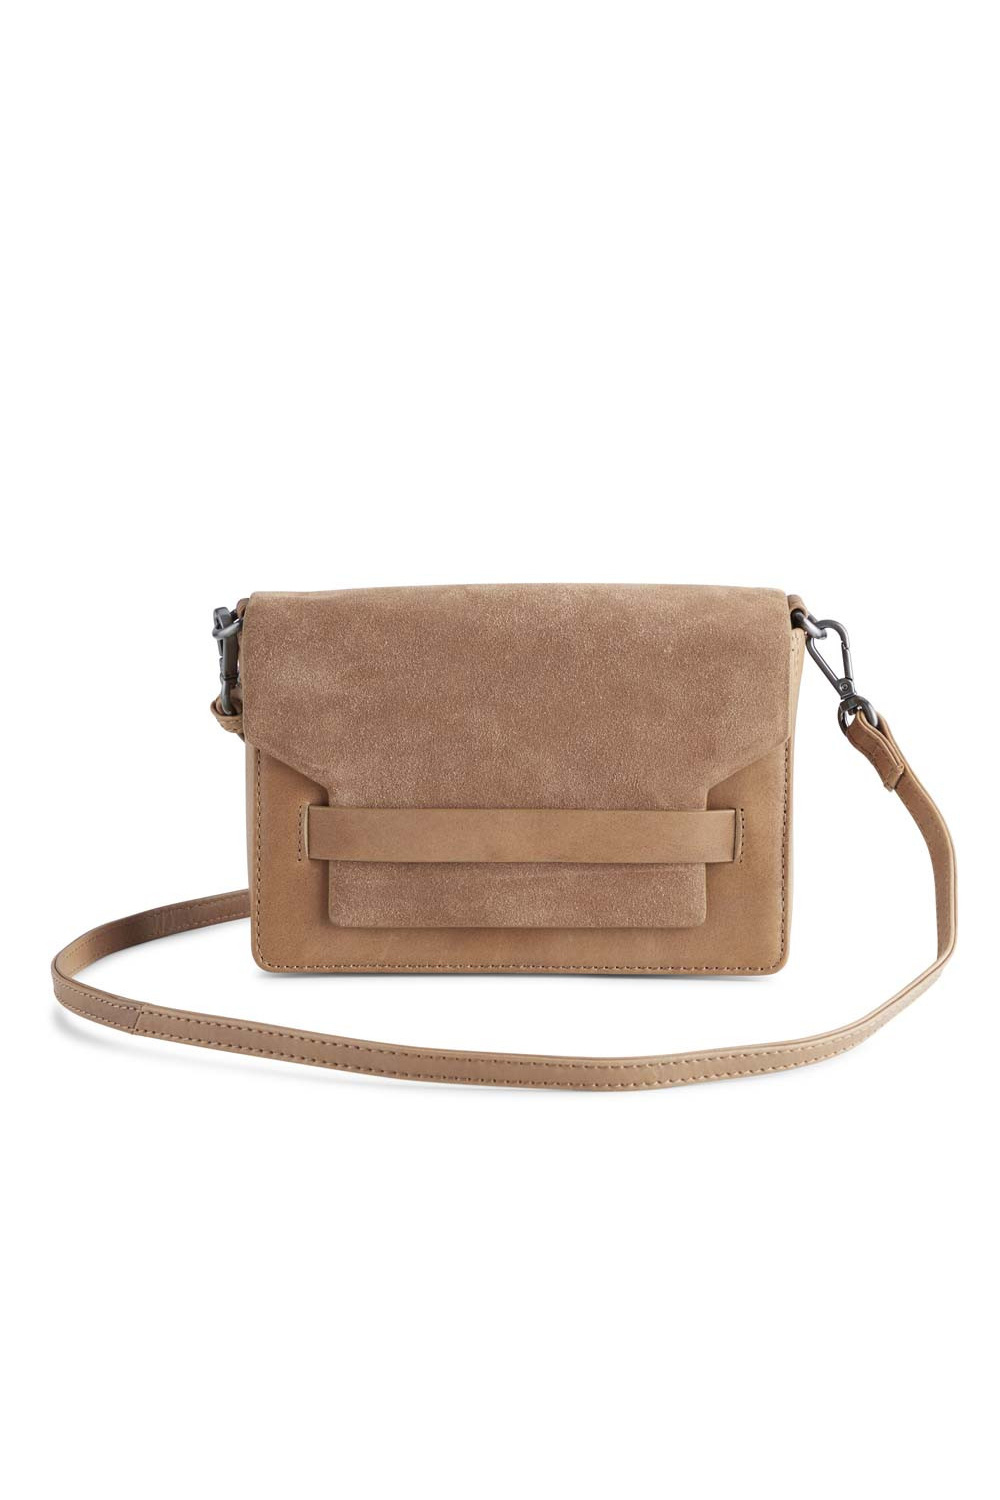 Vanya Crossbody Bag Antique Mix - Caramel-1